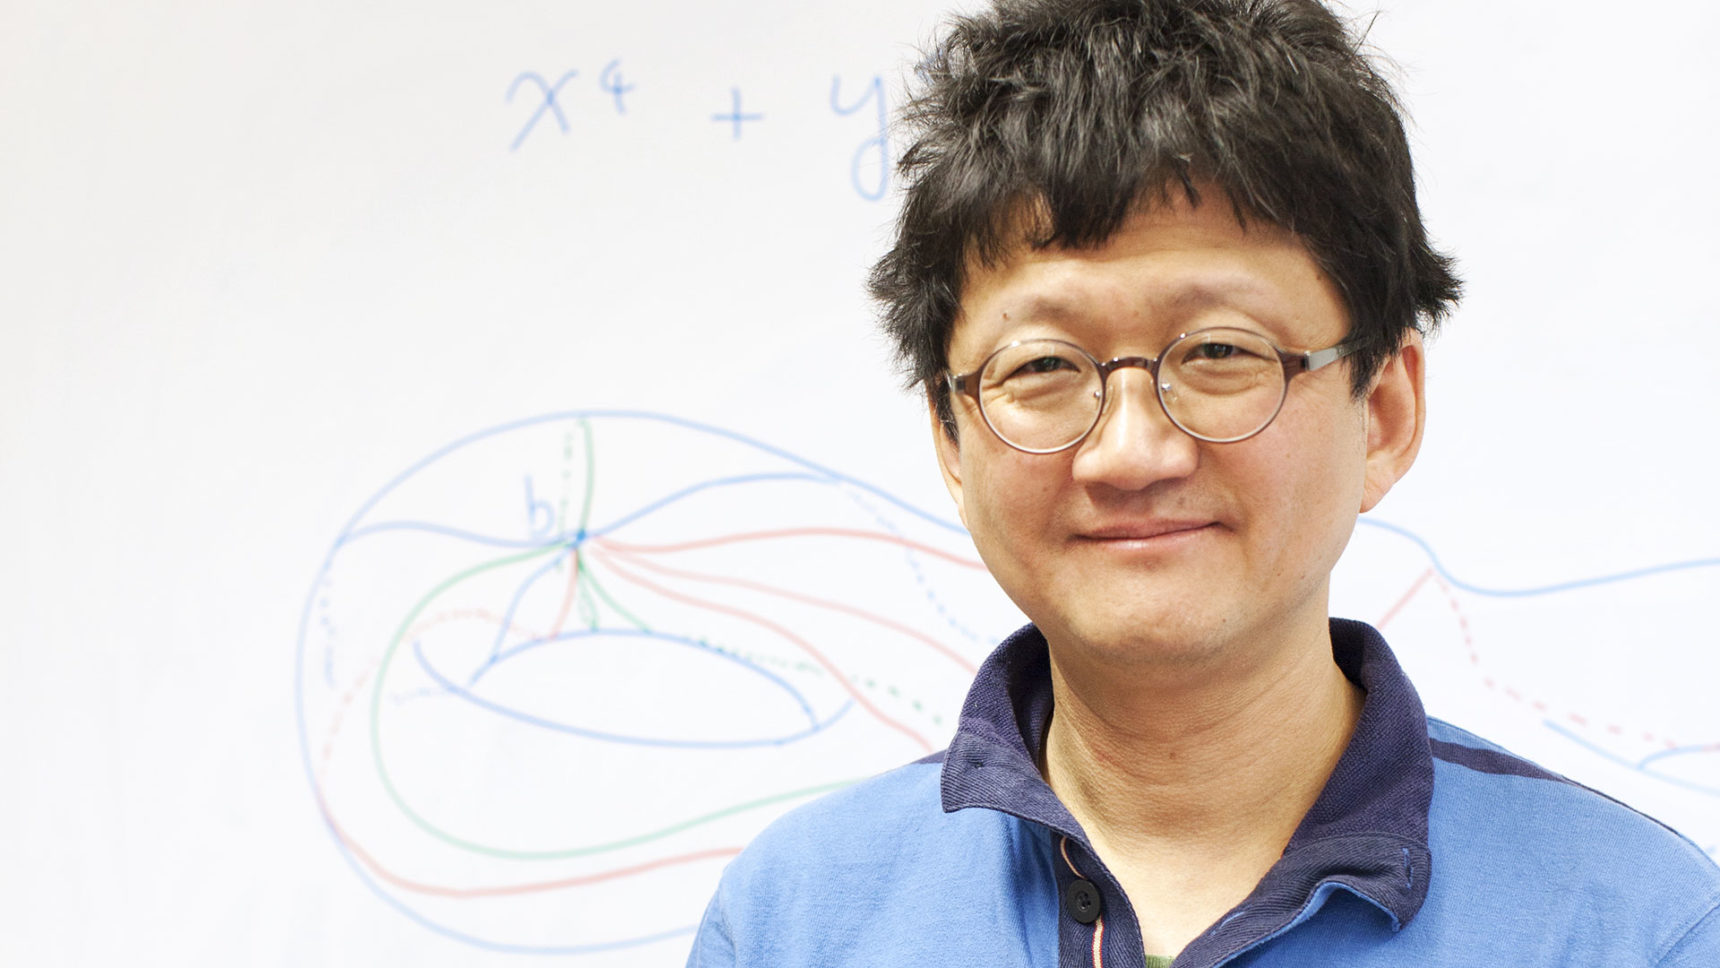 Minhyong Kim wanted to make sure he had concrete results in number theory before he admitted that his ideas were inspired by physics.